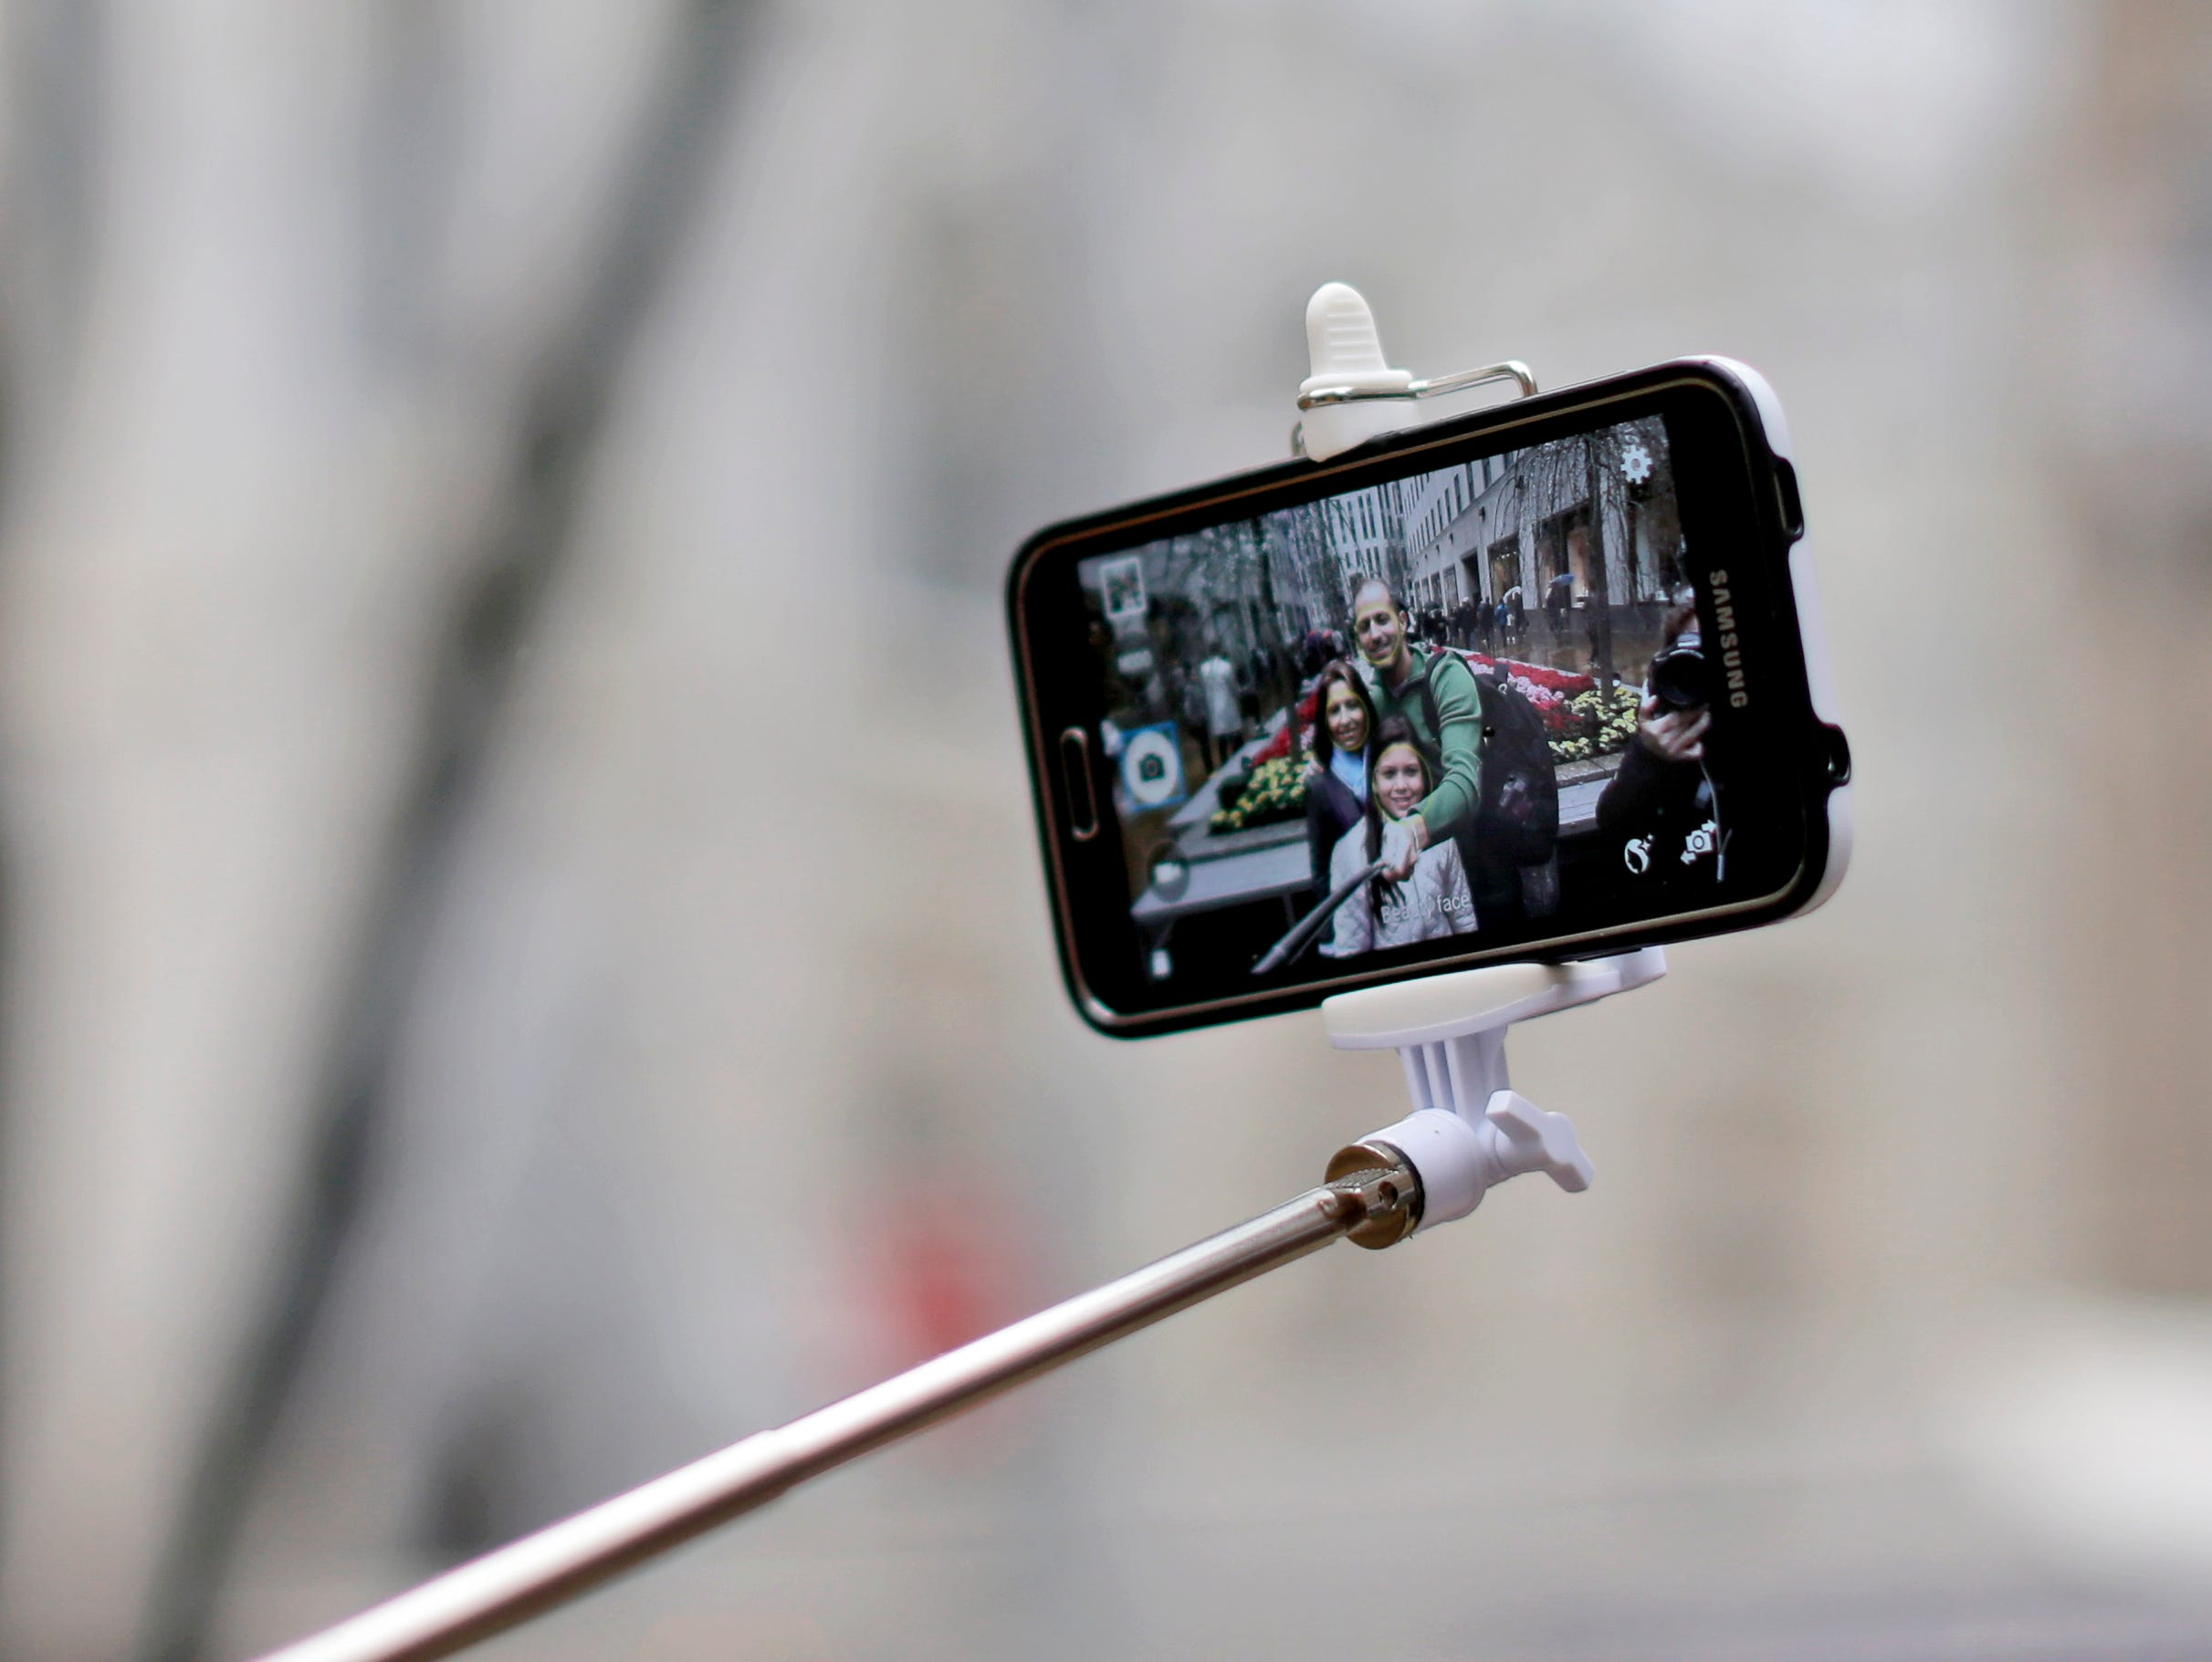 Visitors use a selfie stick to take a photo of themselves in New York.